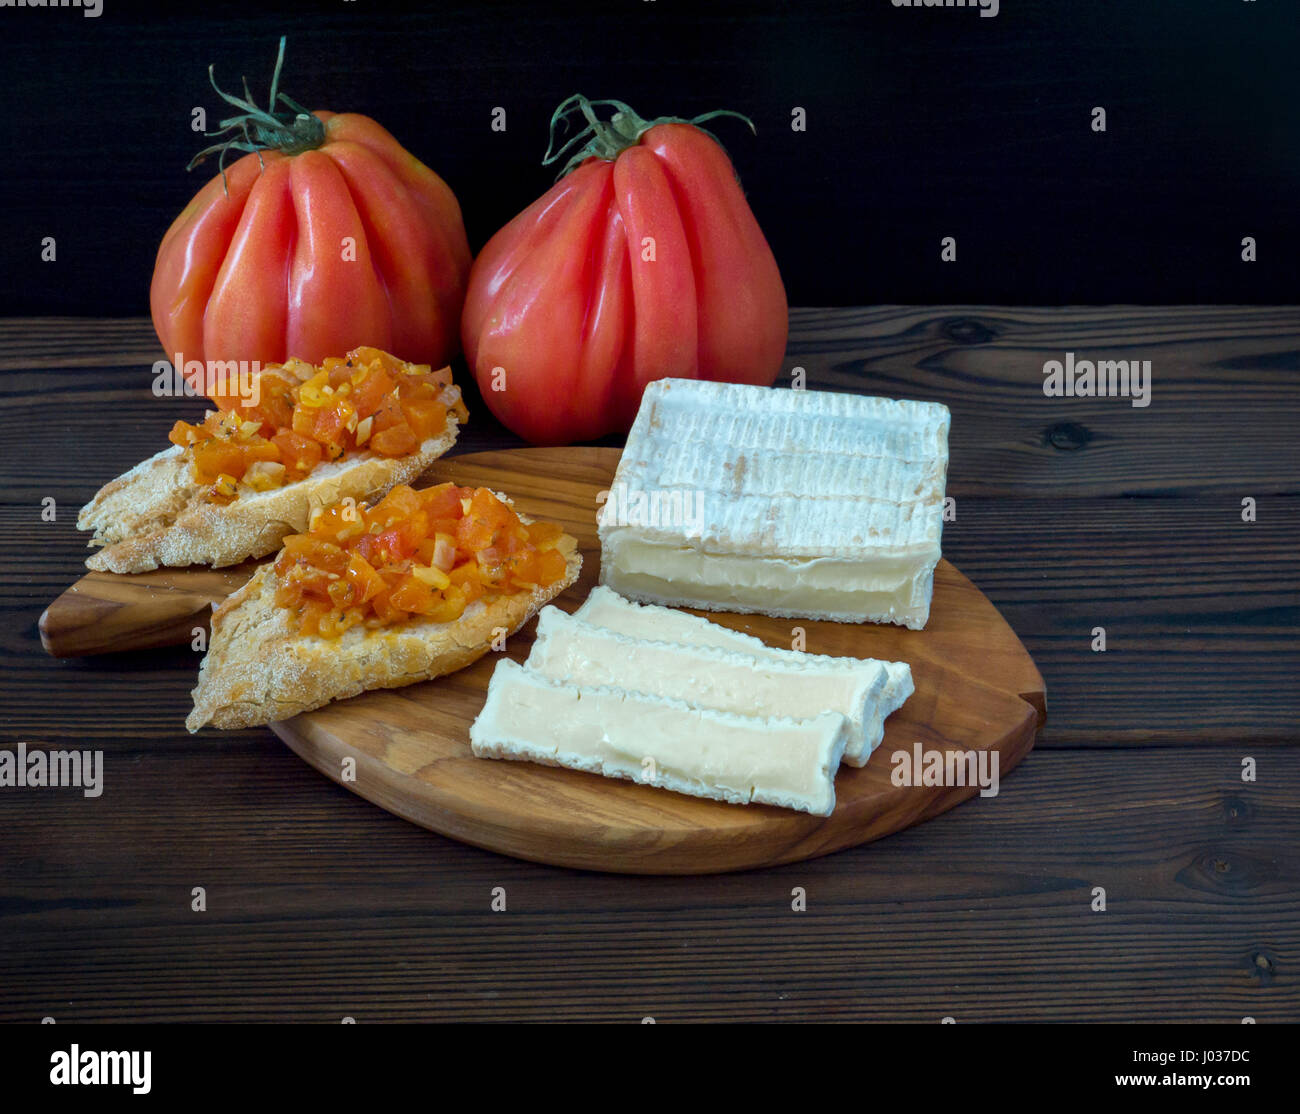 Brick shaped white mold cheese, ripe tomatoes and toasts on the textured wooden board - Stock Image